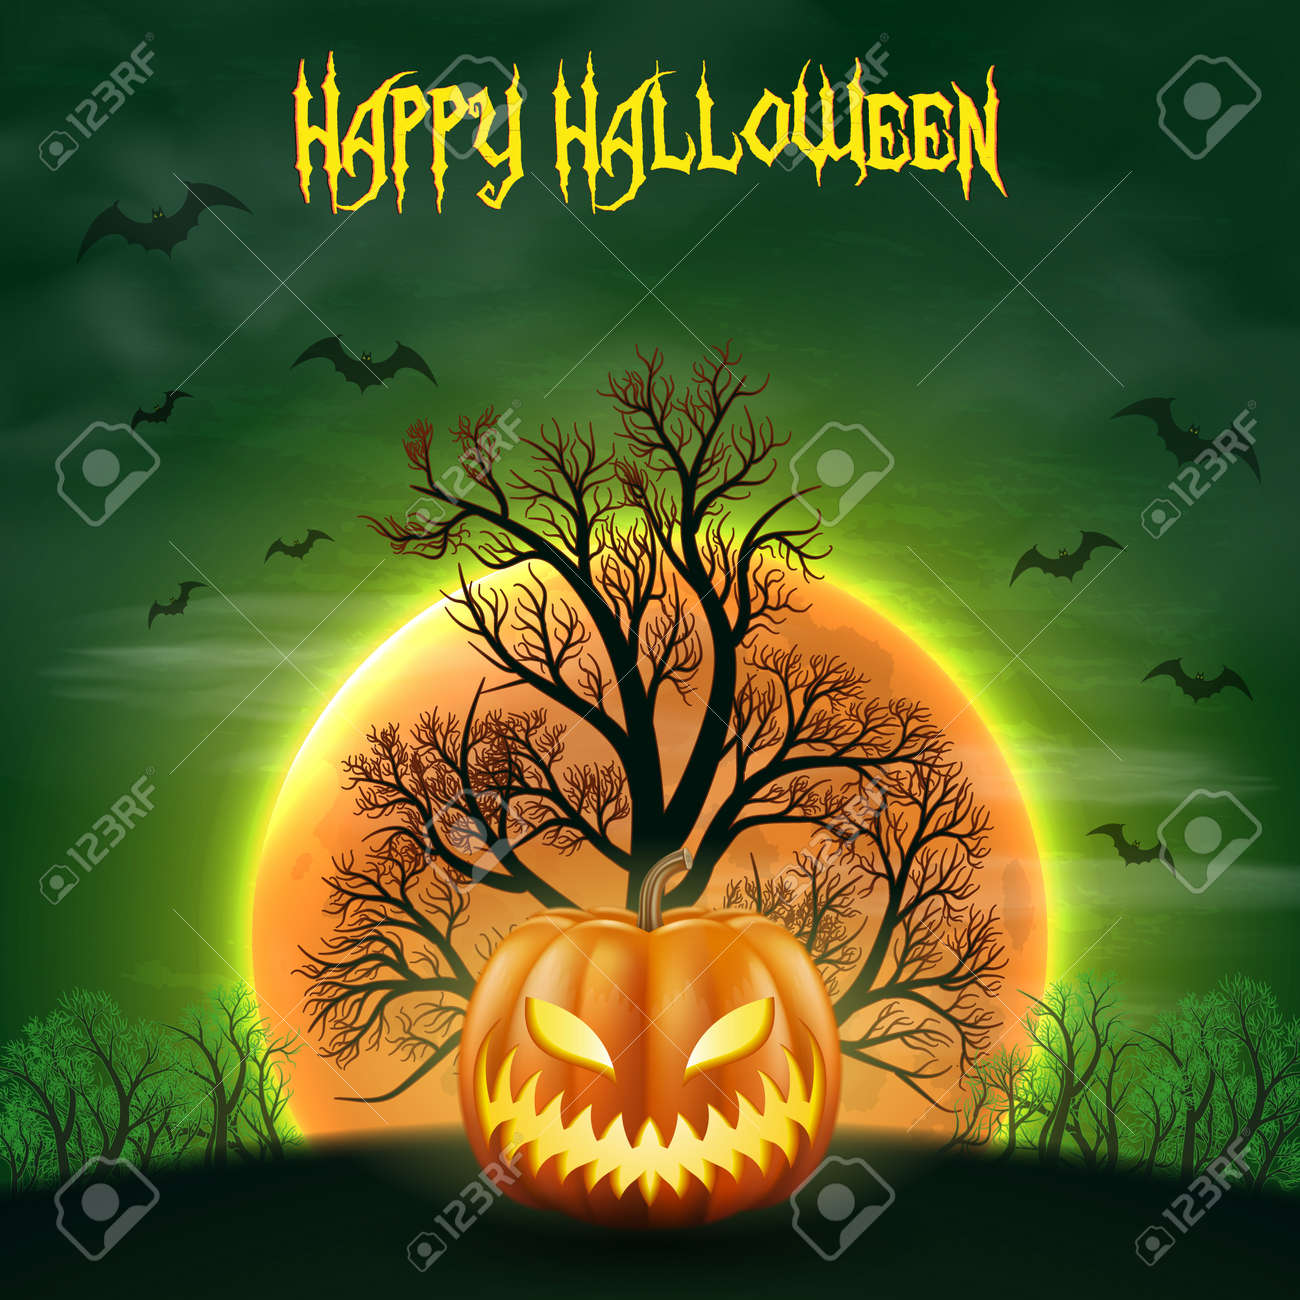 Happy Halloween night background with realistic scary pumpkins and moon. - 109879648